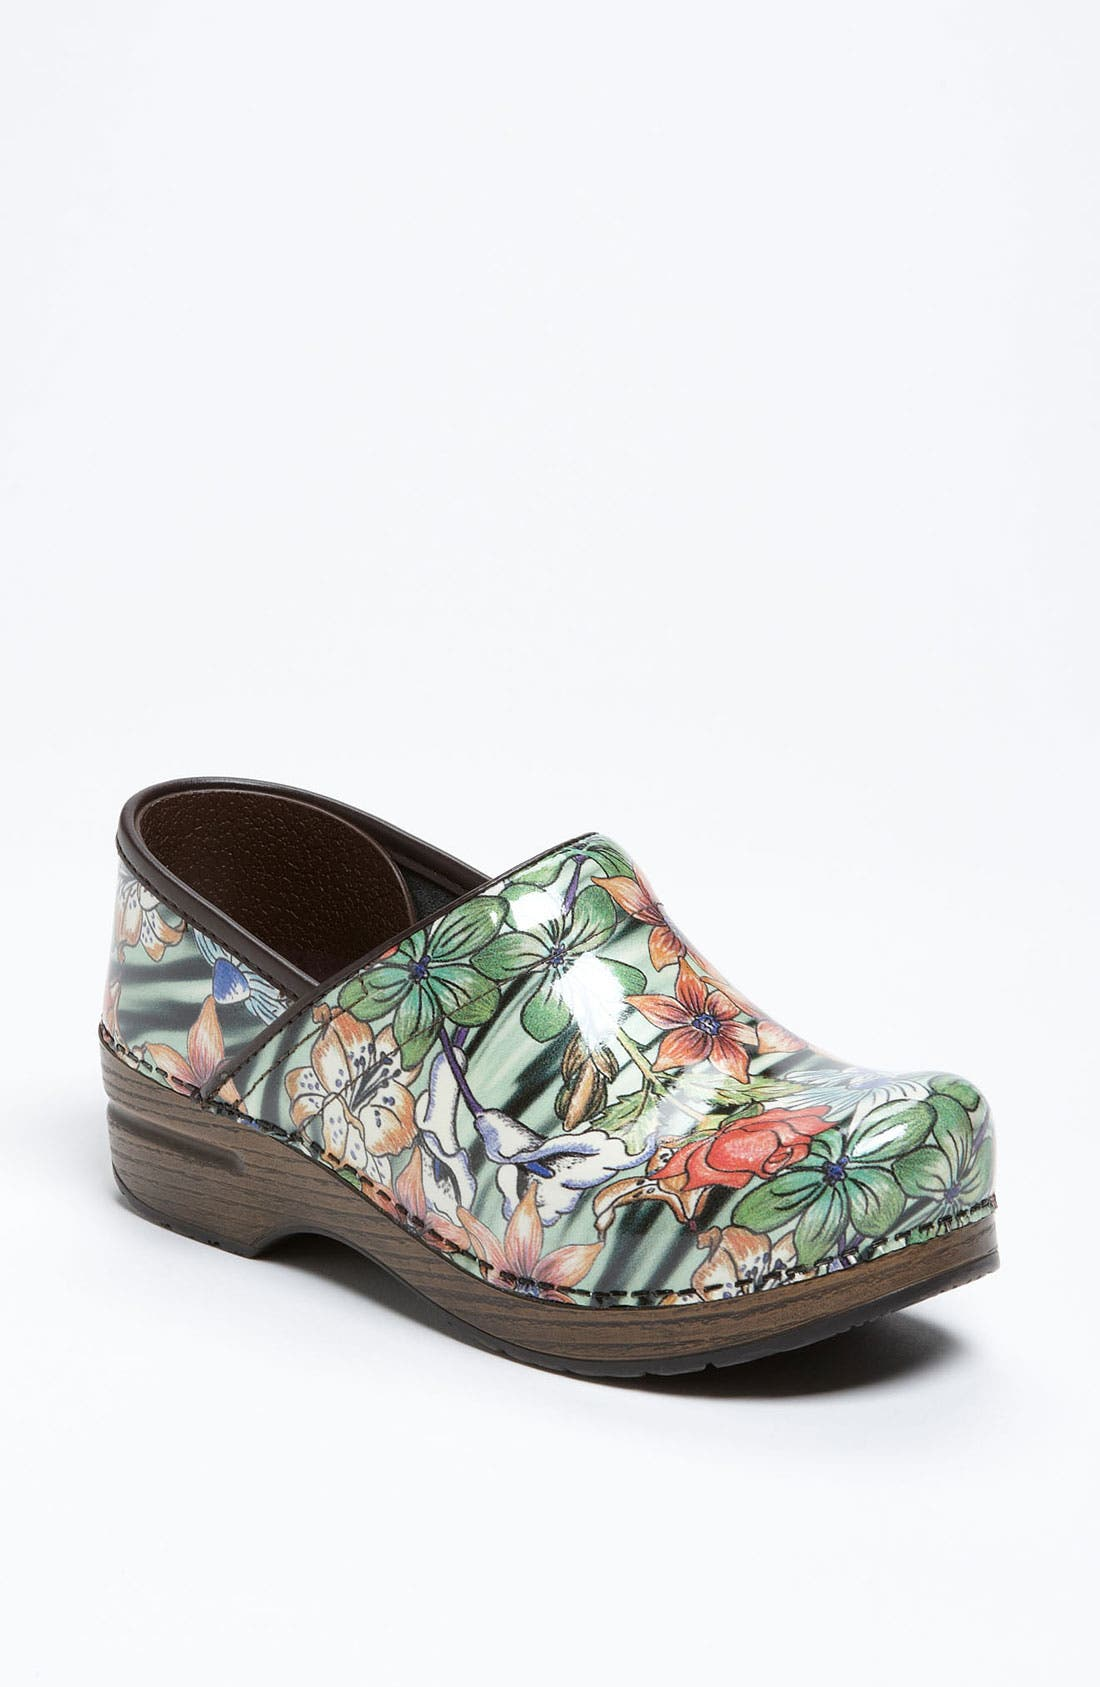 Alternate Image 1 Selected - Dansko 'Professional - Tiger Lily' Patent Clog (Limited Edition)